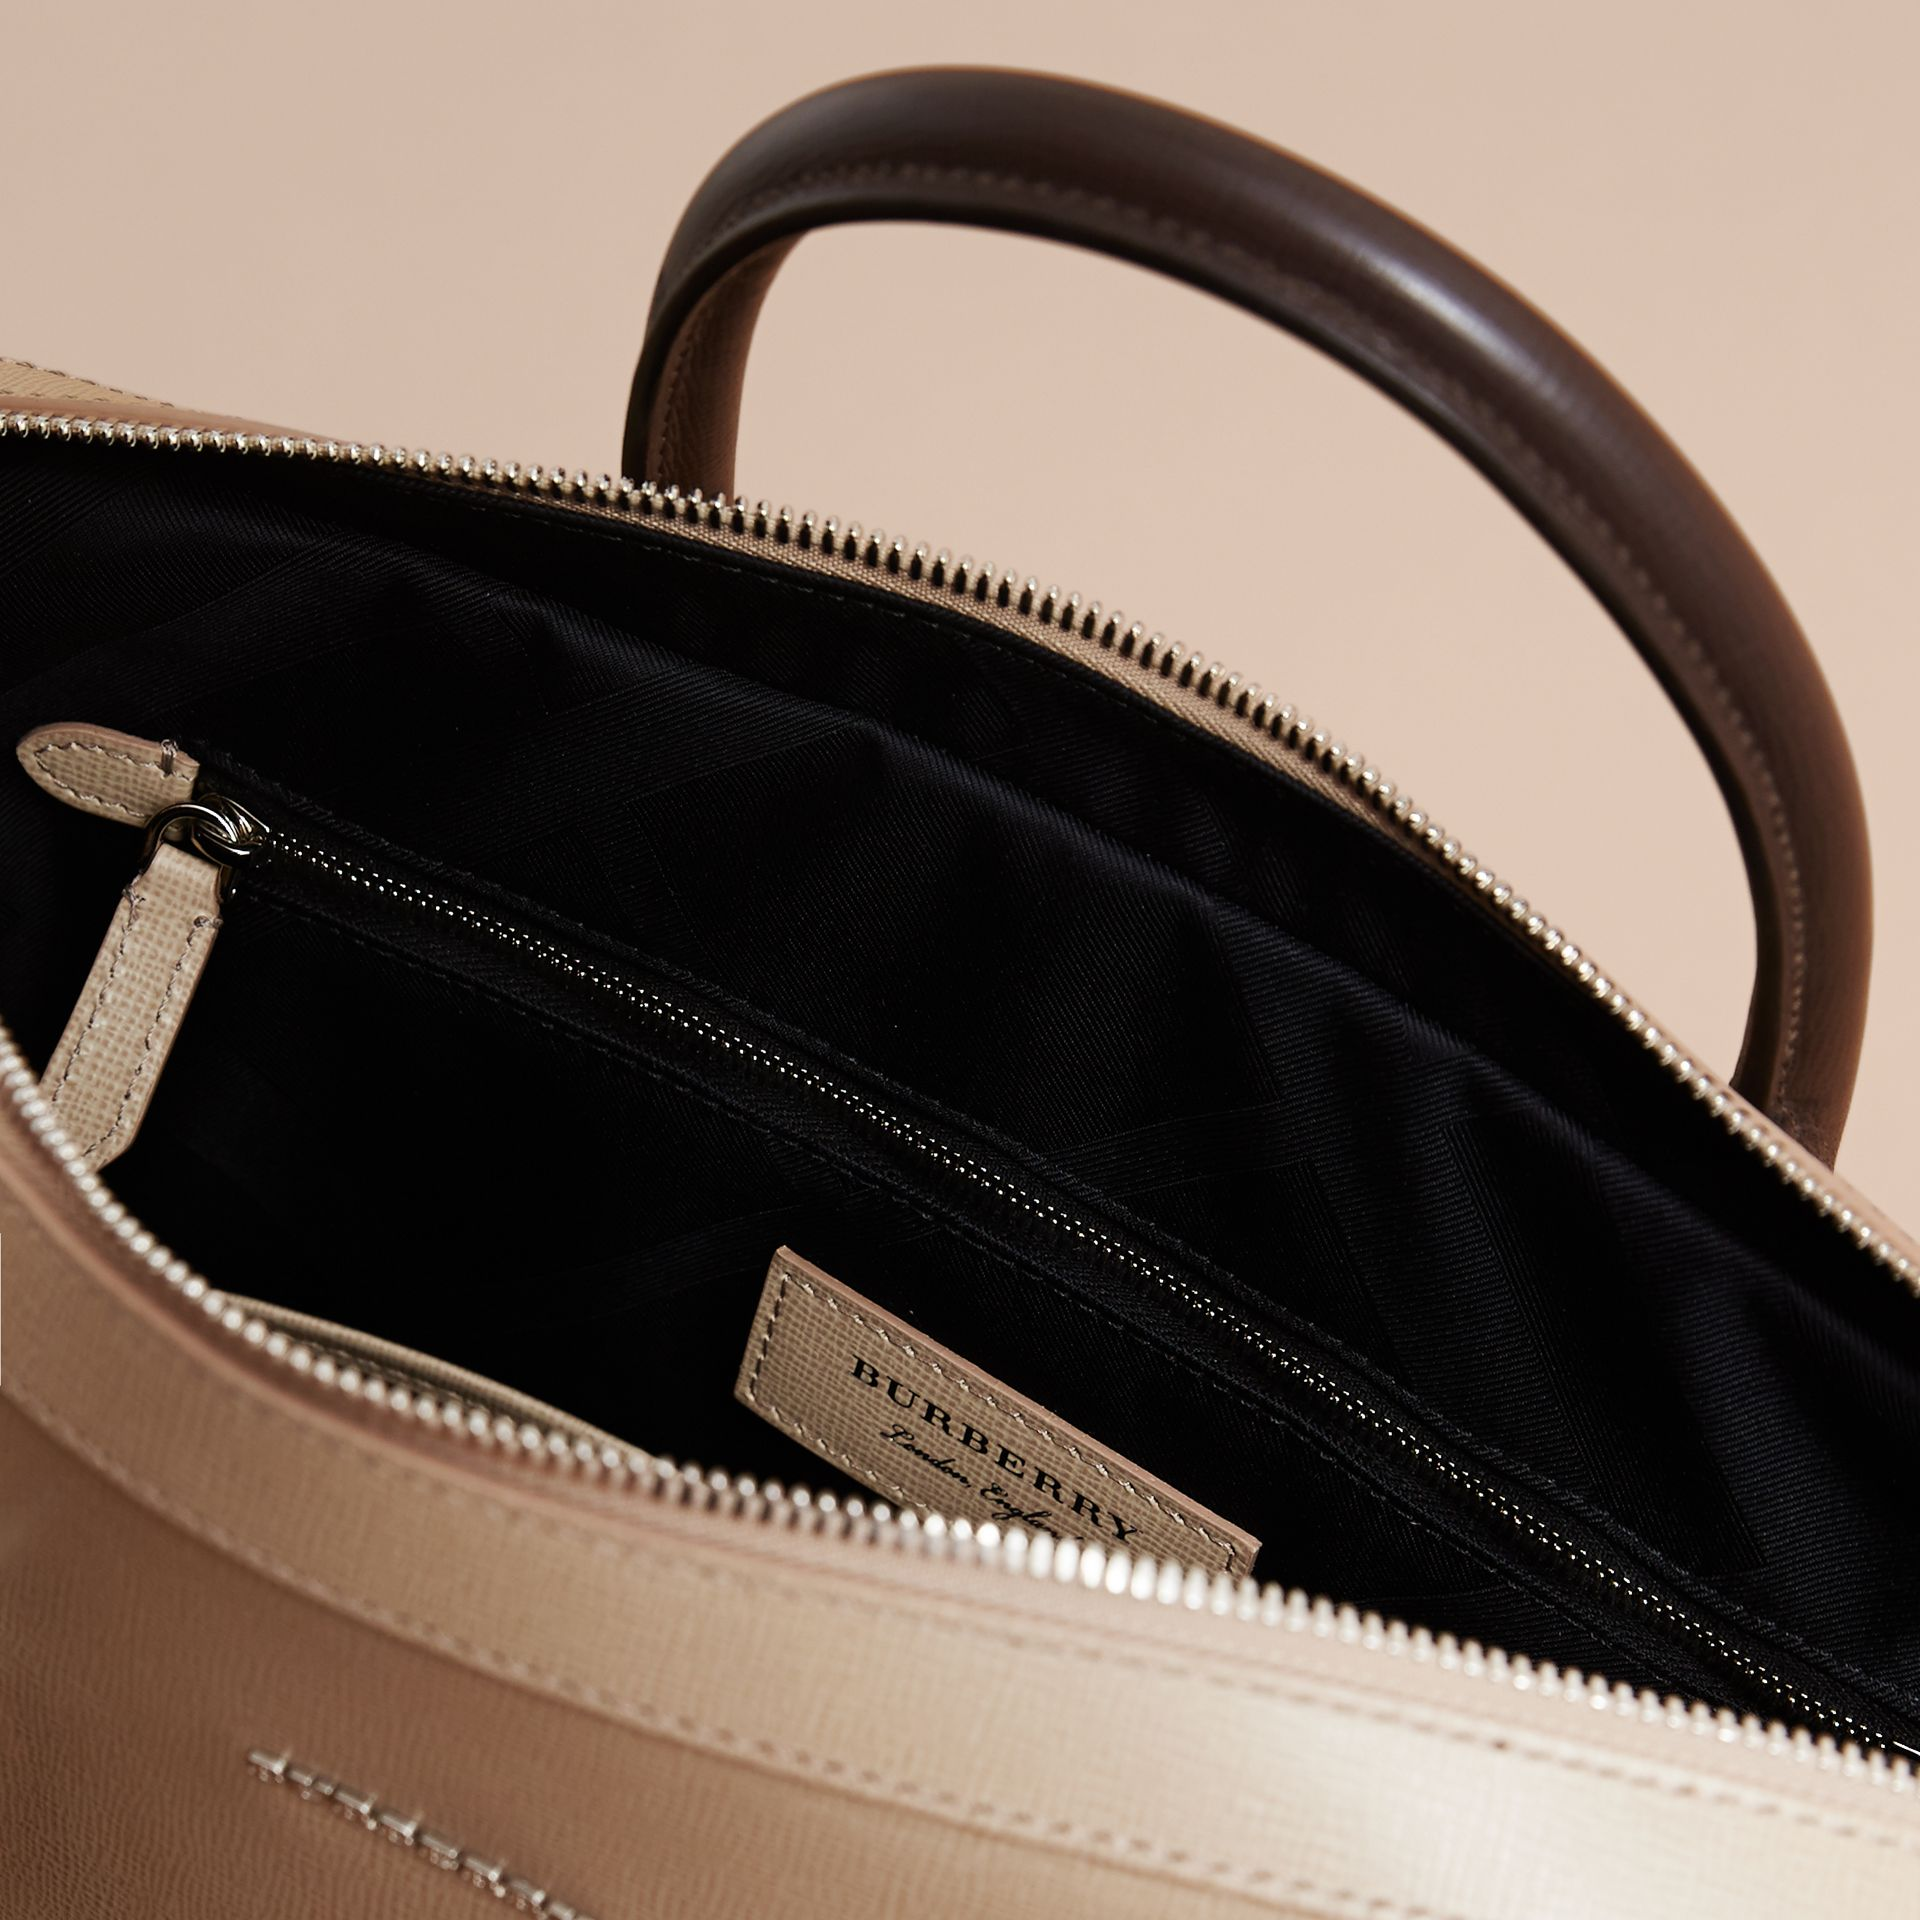 London Leather Briefcase in Honey/bitter Chocolate - Men | Burberry United States - gallery image 6